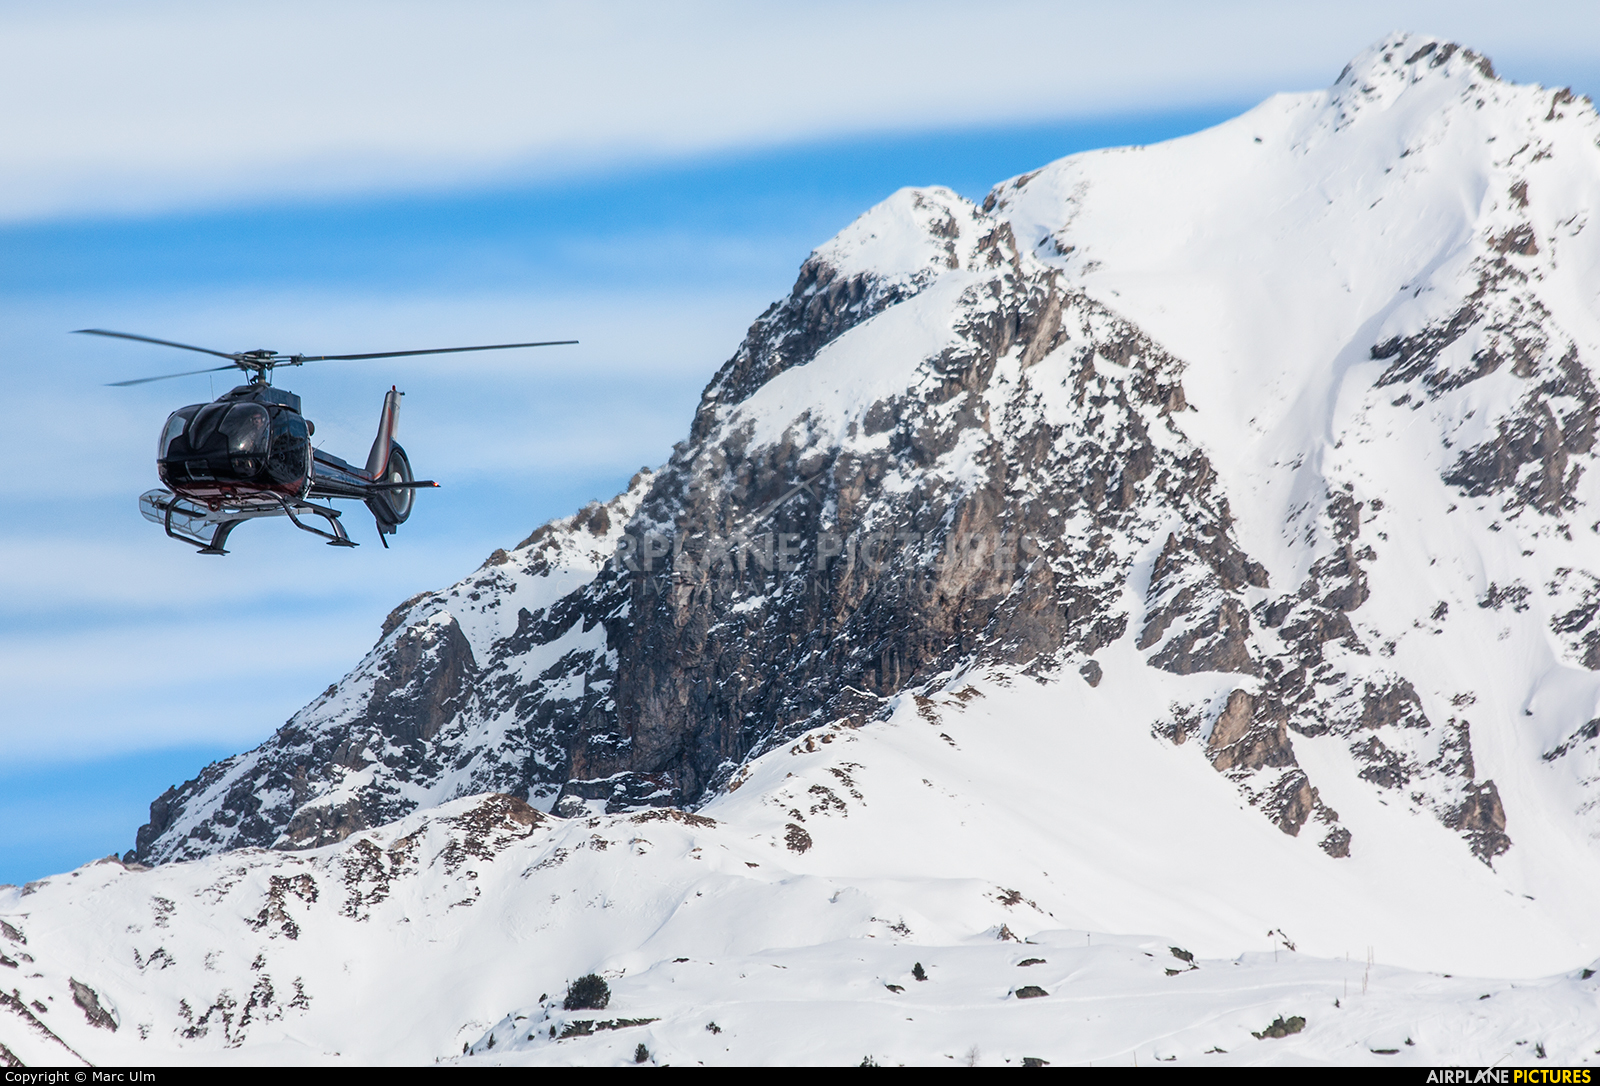 Skycam Helicopters F-GOLH aircraft at Courchevel